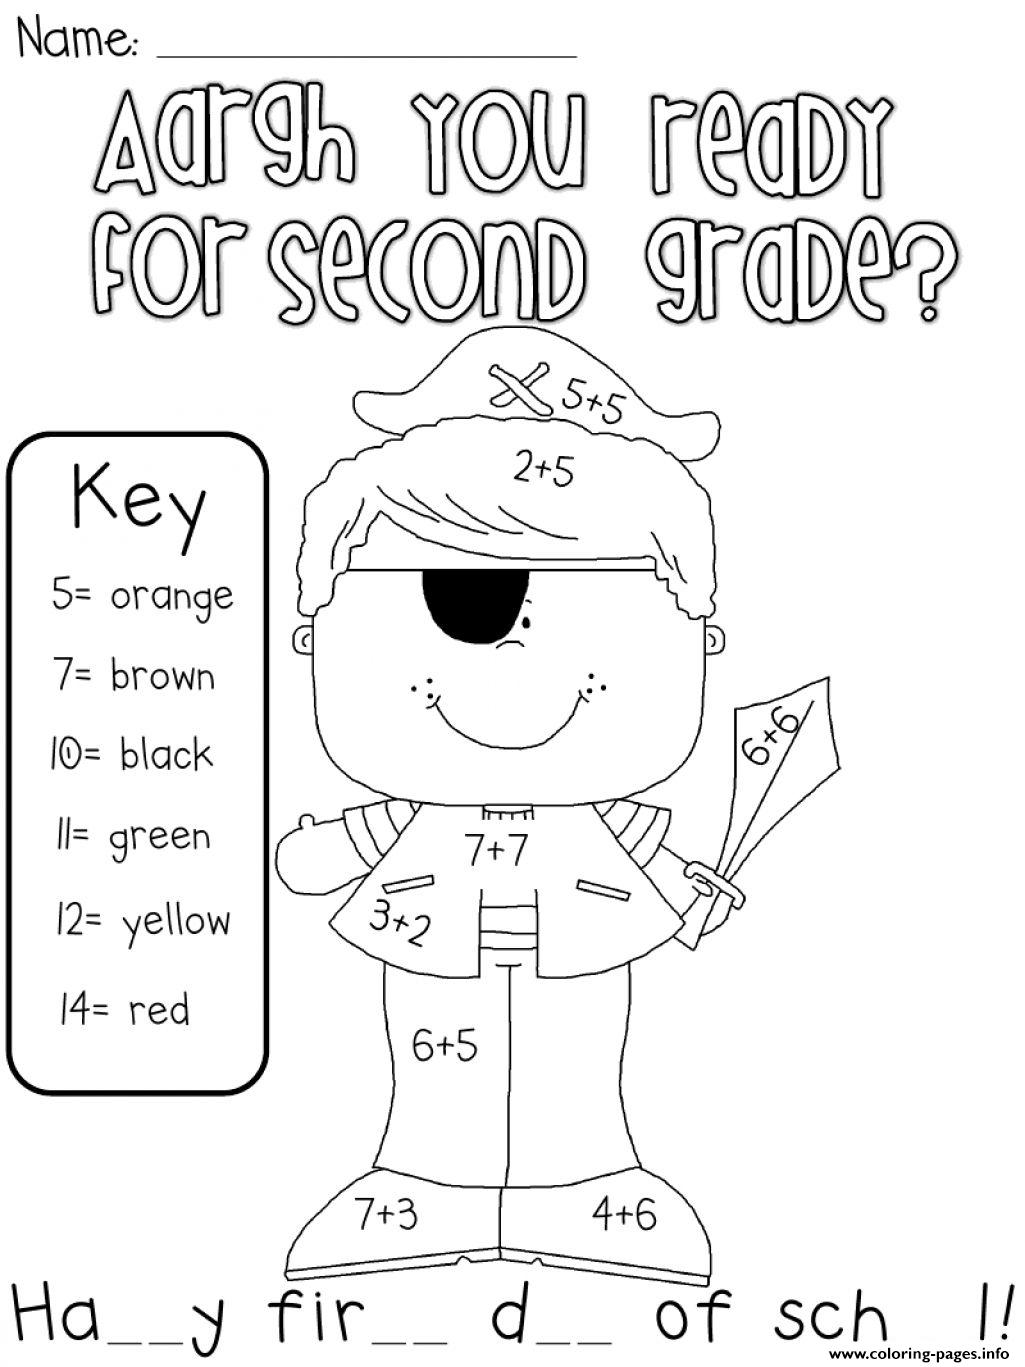 Are You Ready For Second Grade Coloring Pages Printable